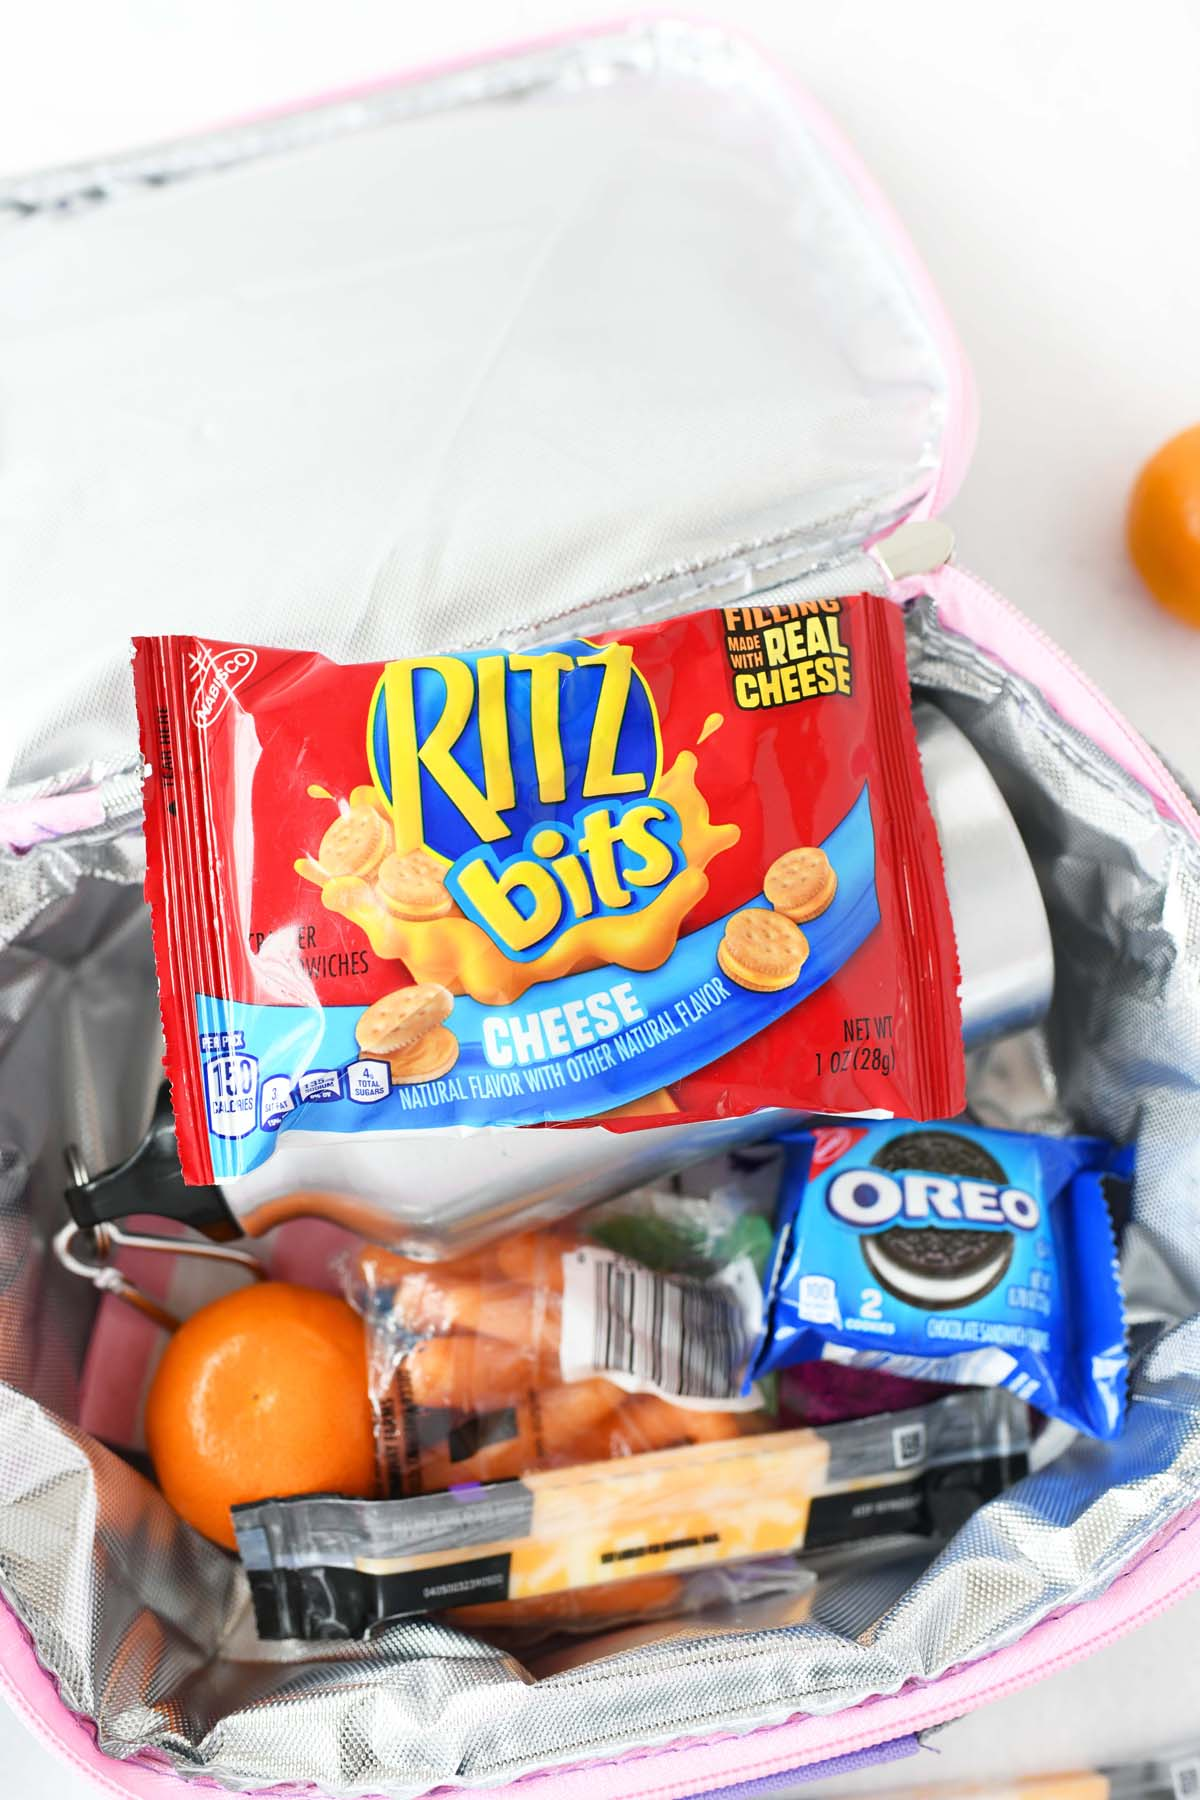 Ritz Bits with Cheese in a kids lunchbox with other snacks.